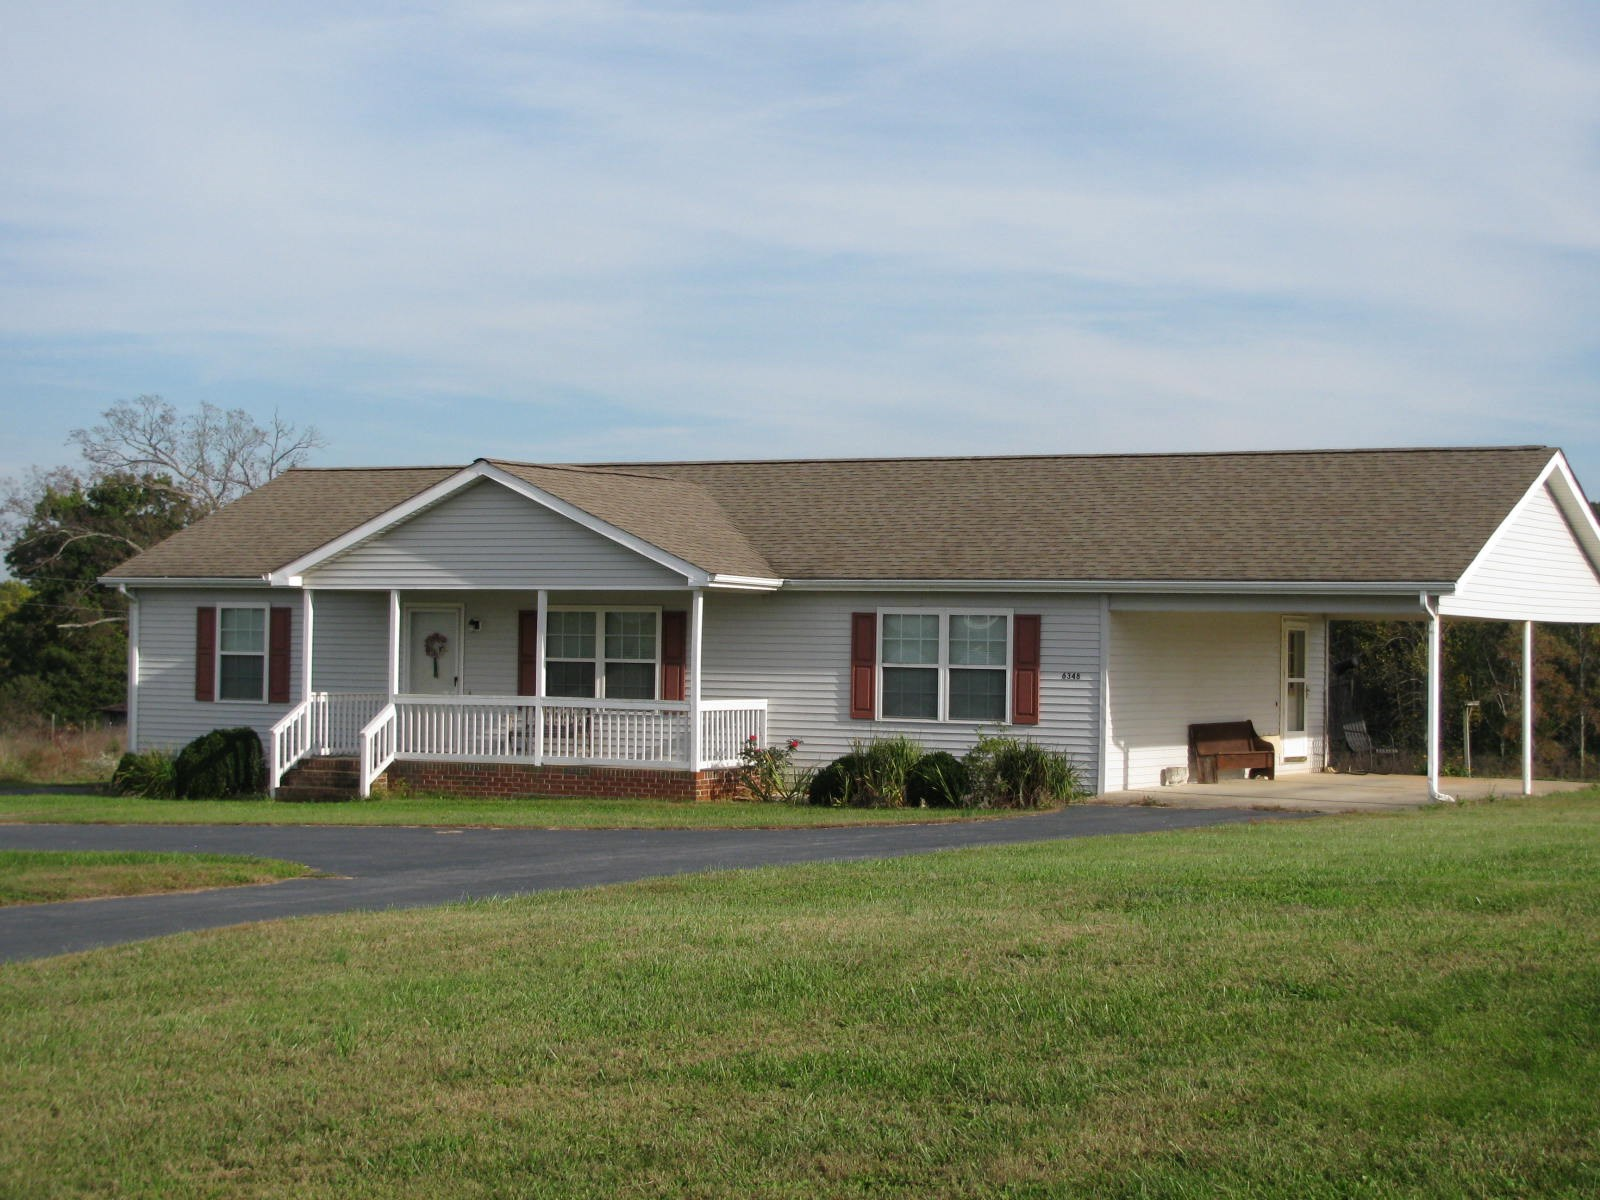 WELL-MAINTAINED HOME ON ALMOST 1 ACRE IN HURT VA